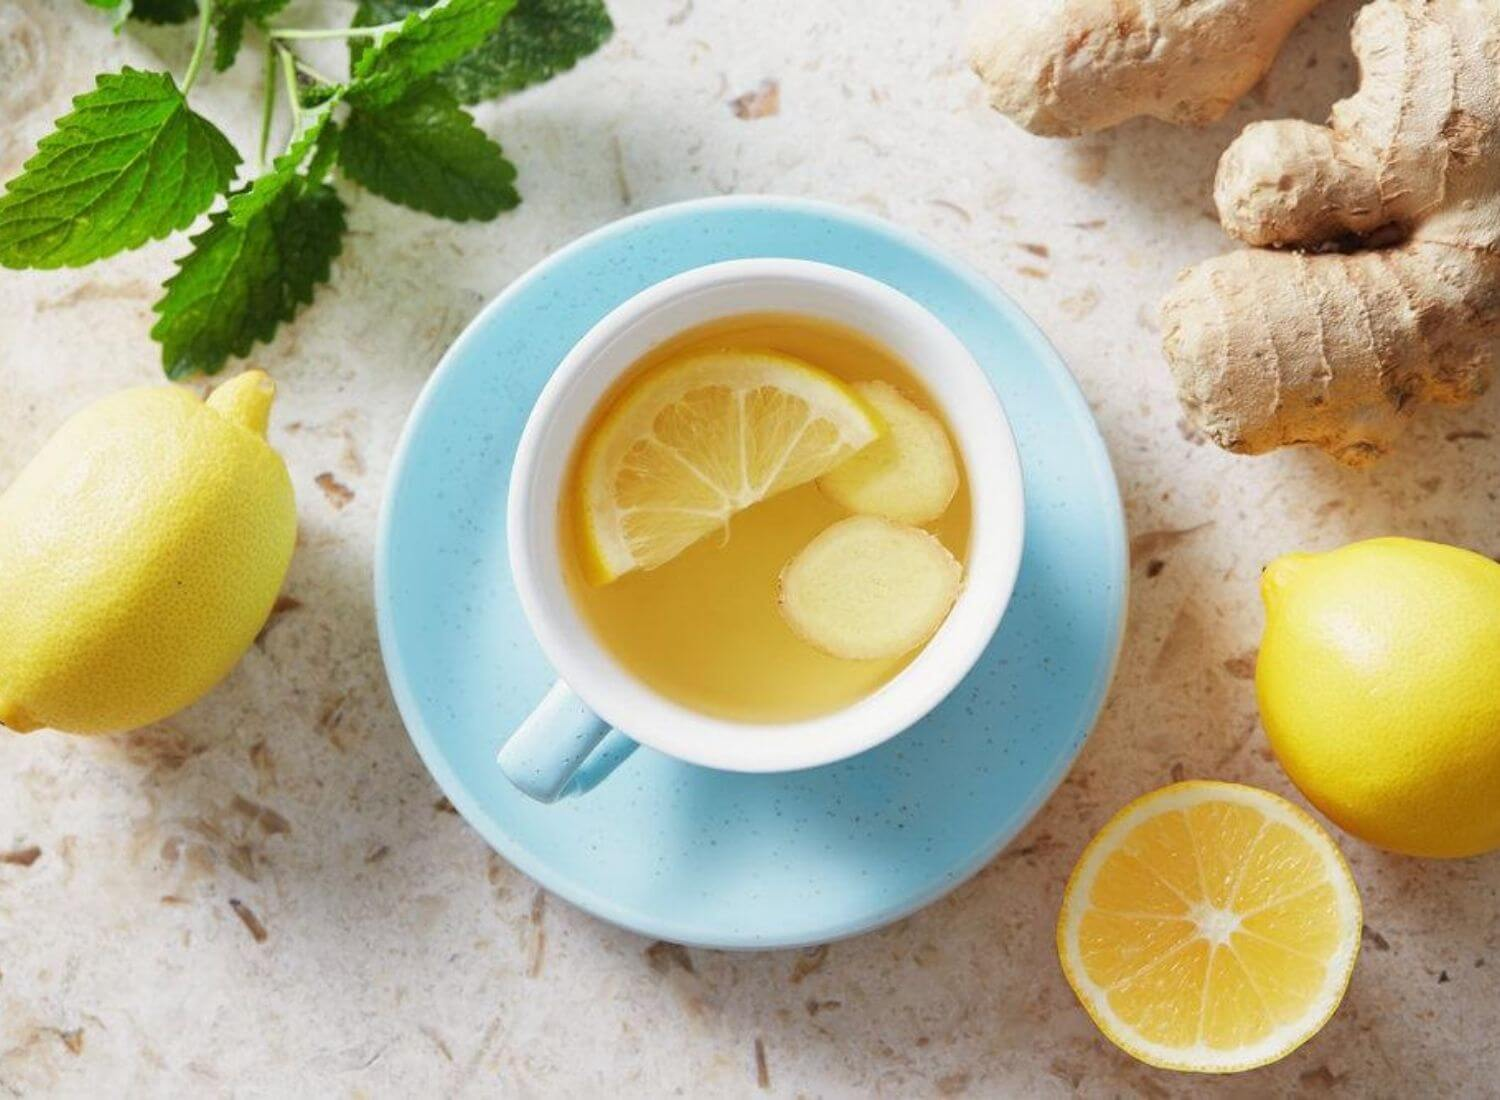 8 Benefits Of Lemon Water That Will Change Your Perspective